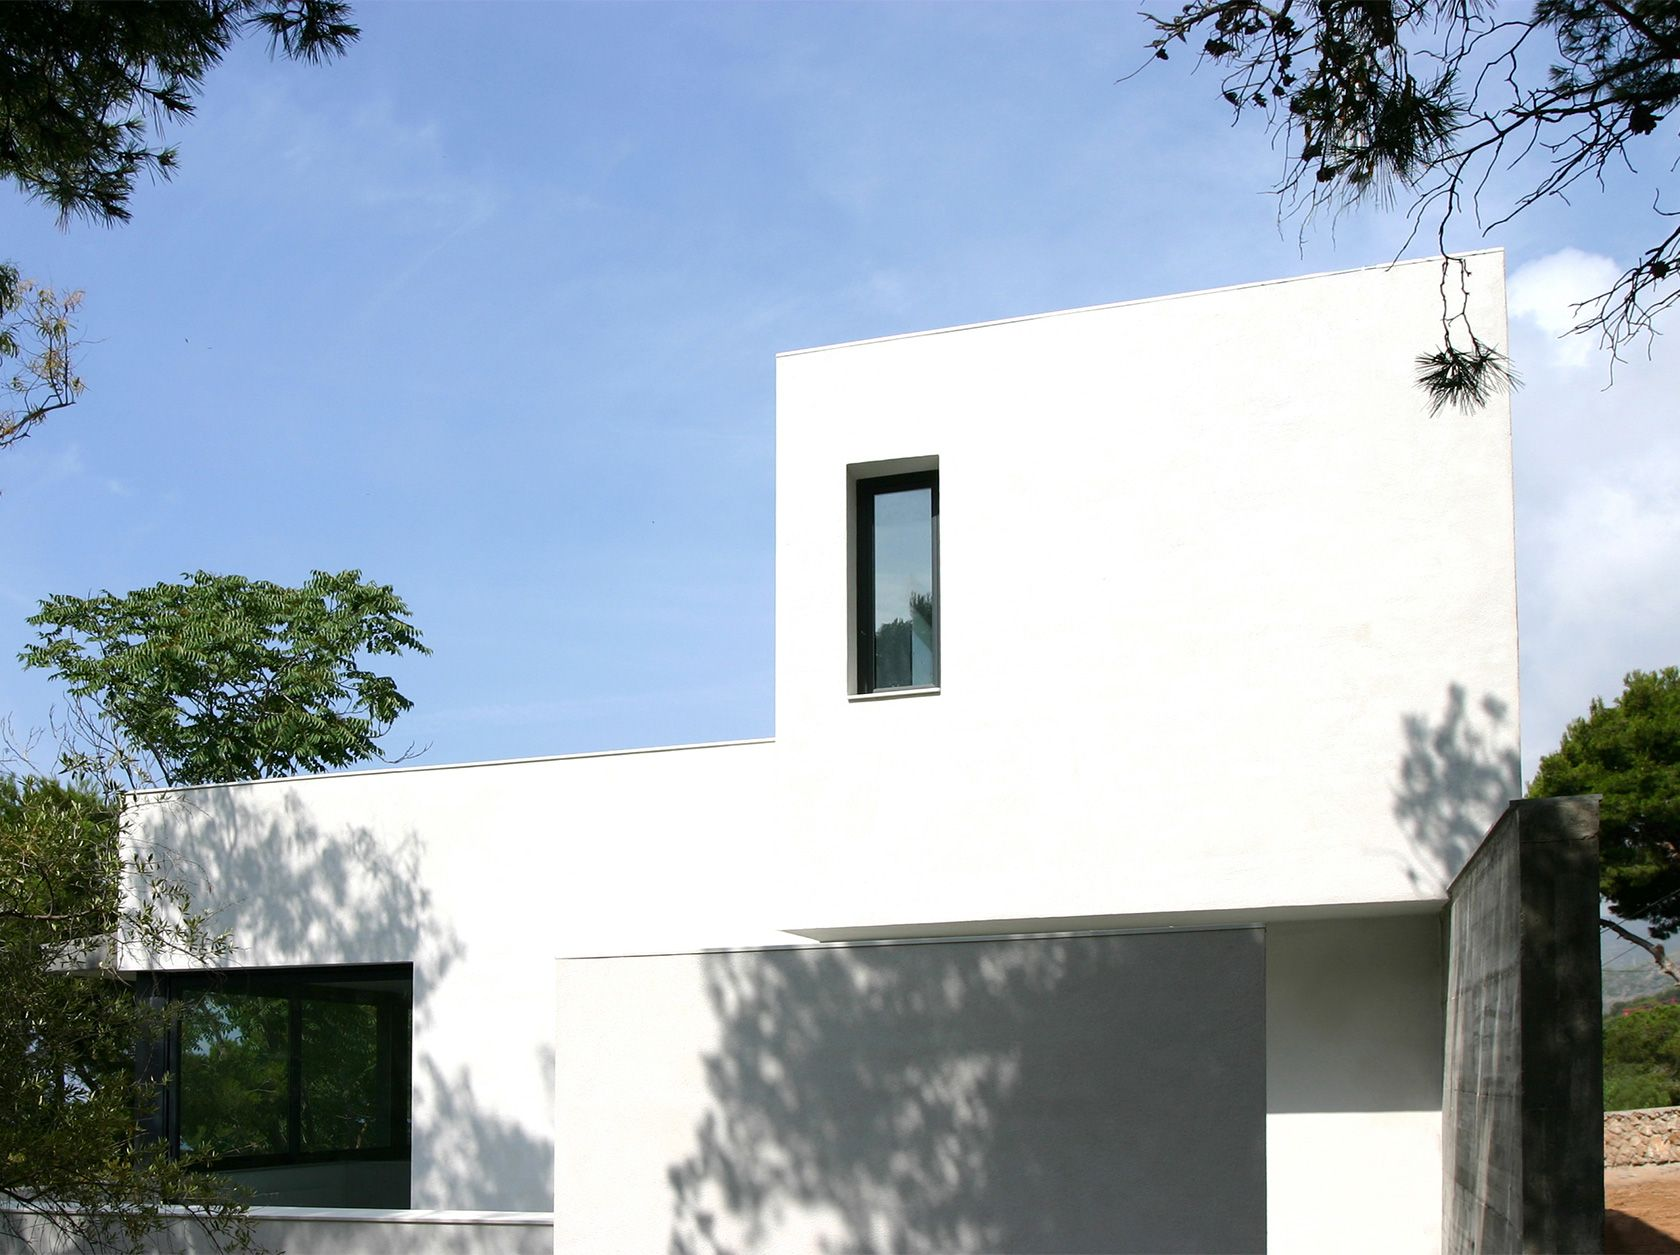 bellamar housing architecture anna noguera